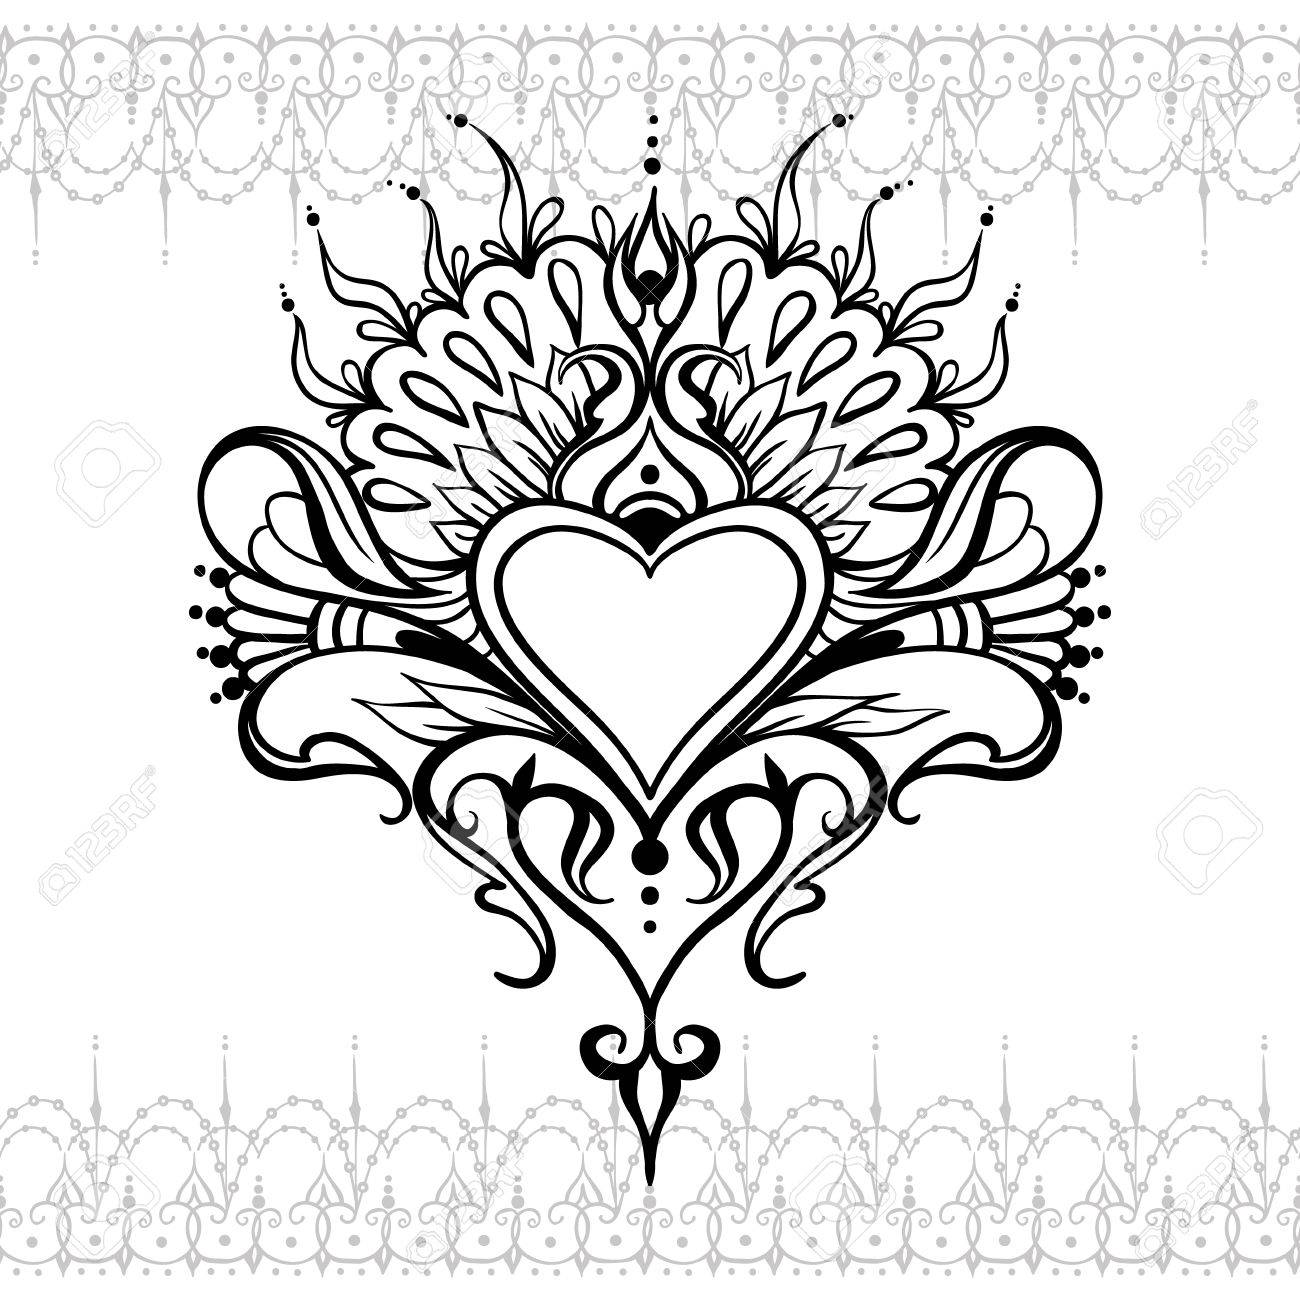 Sketch Of Tattoo Henna Heart Mehndi Element For Photo Frame